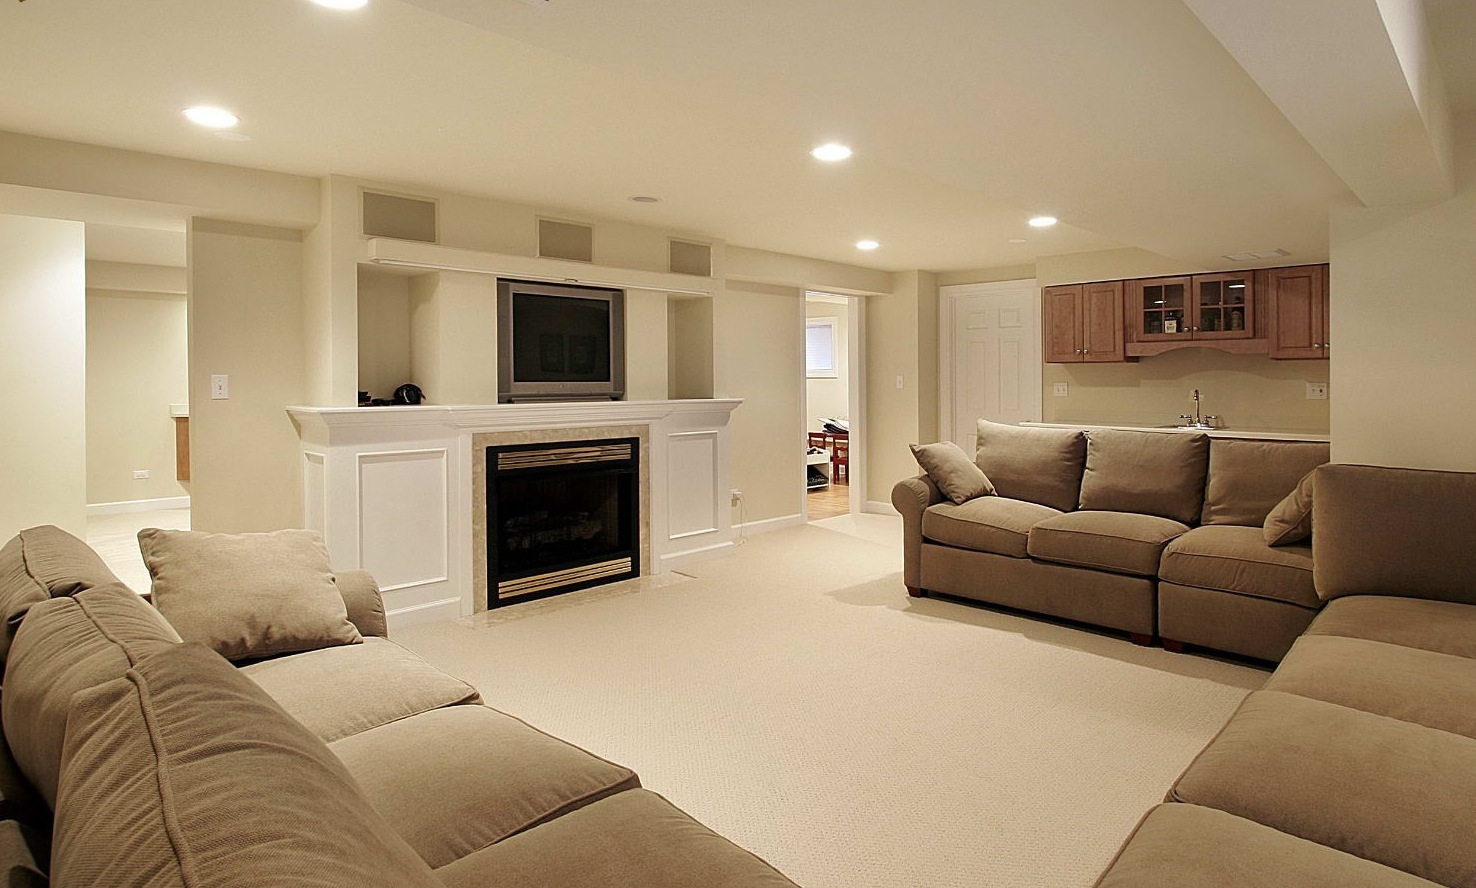 Basement Living Room Designs Brilliant 30 Cool Ways To Decorate Your Basement  Basements Decorating And Design Decoration